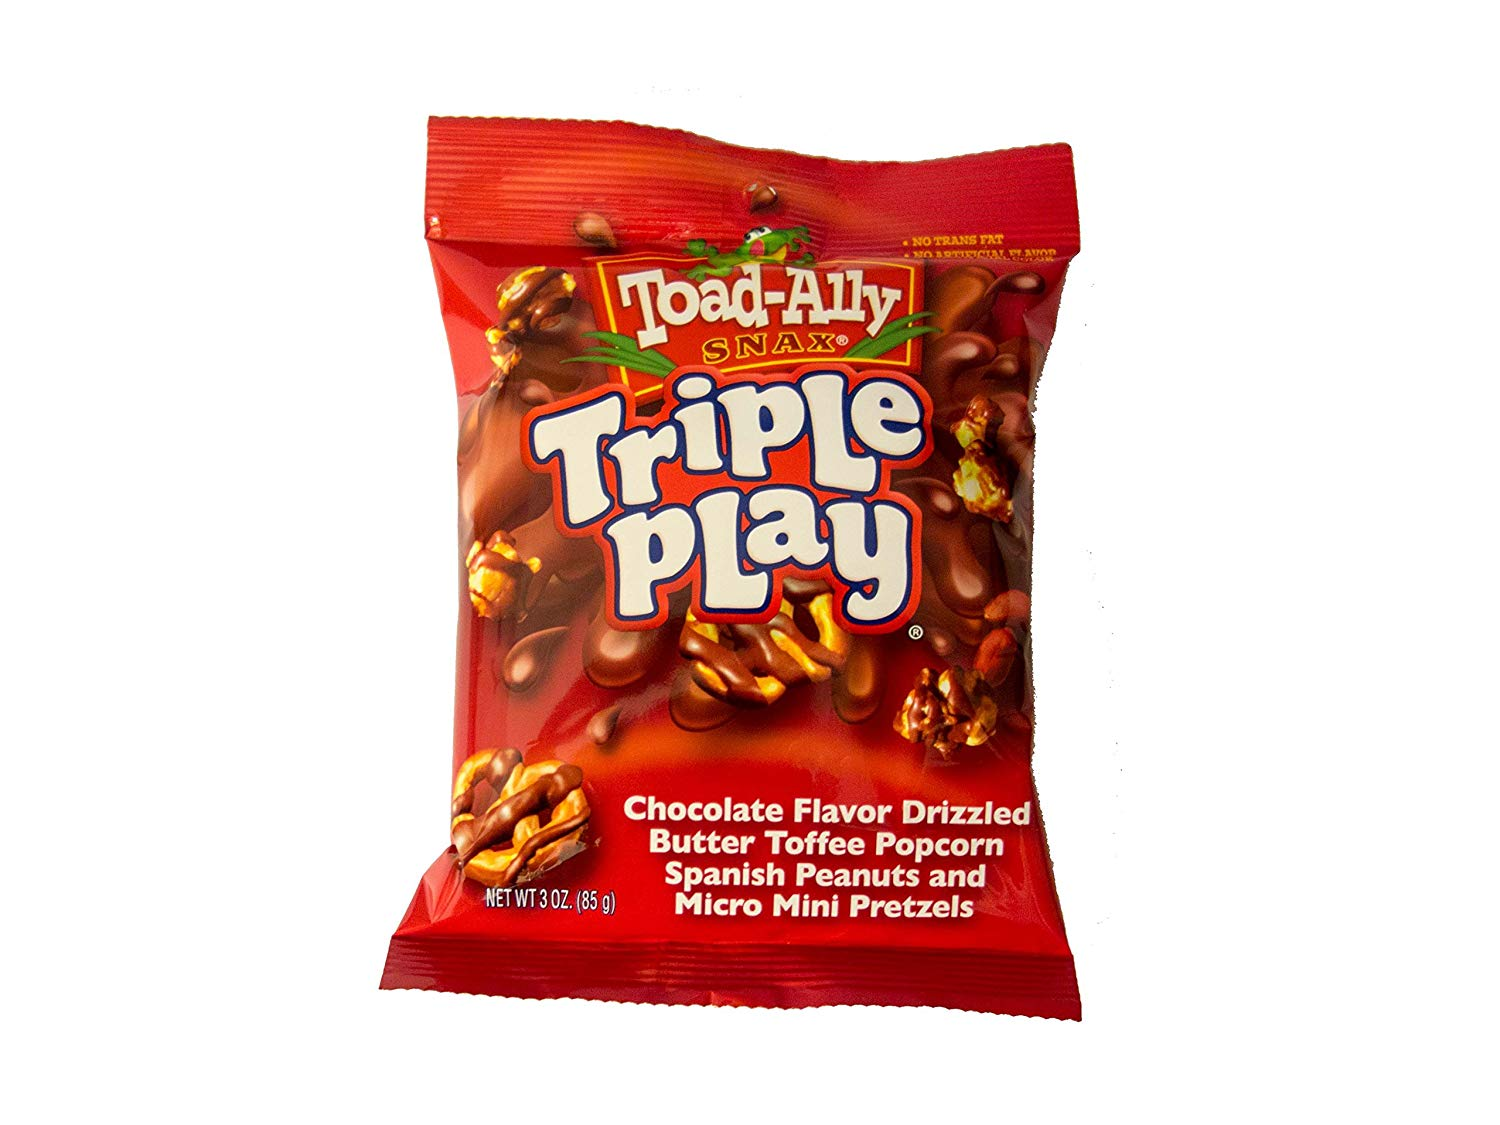 Toad-Ally Triple Play Chocolate Drizzled Toffee Popcorn, Spanish Peanuts & Pretzels (85g)-0